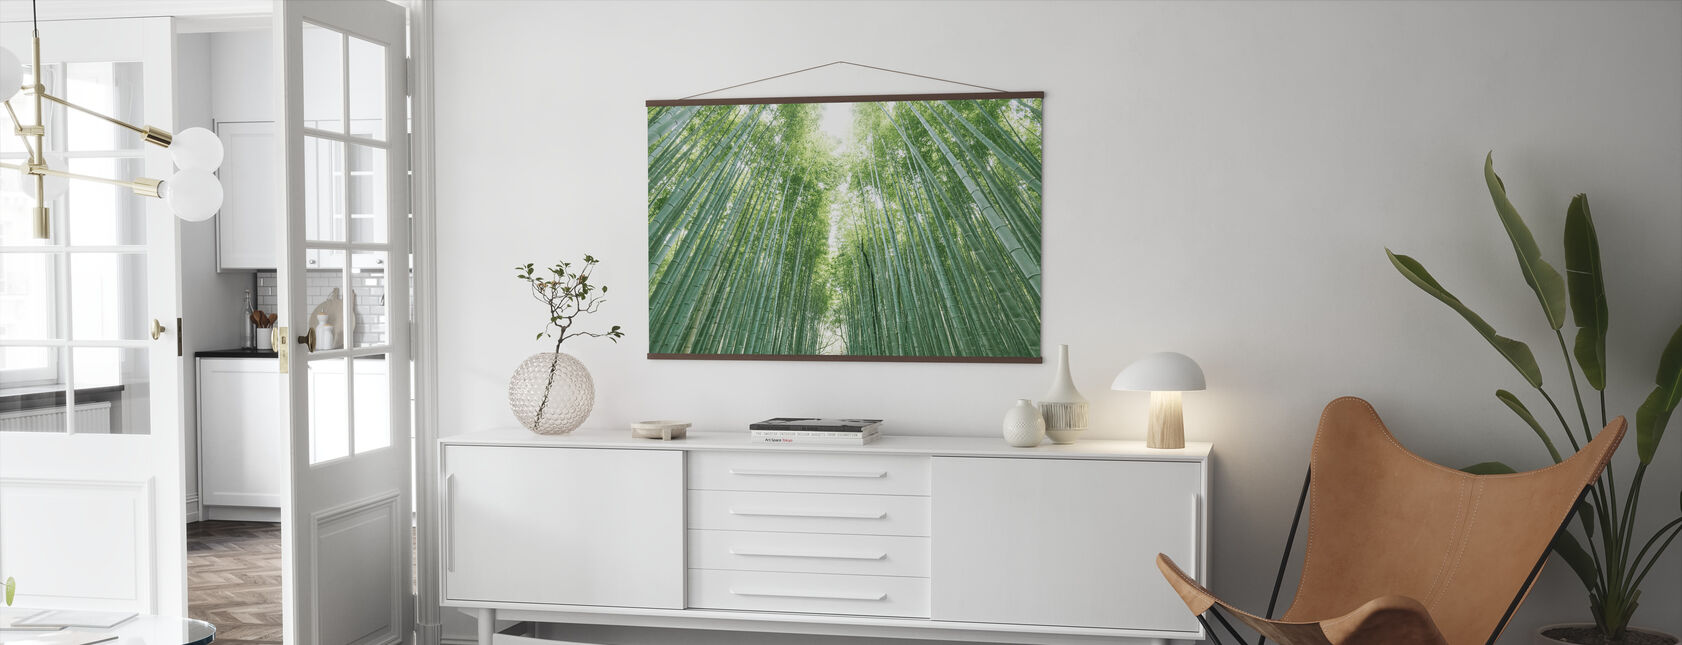 Bamboo Forest - Poster - Living Room